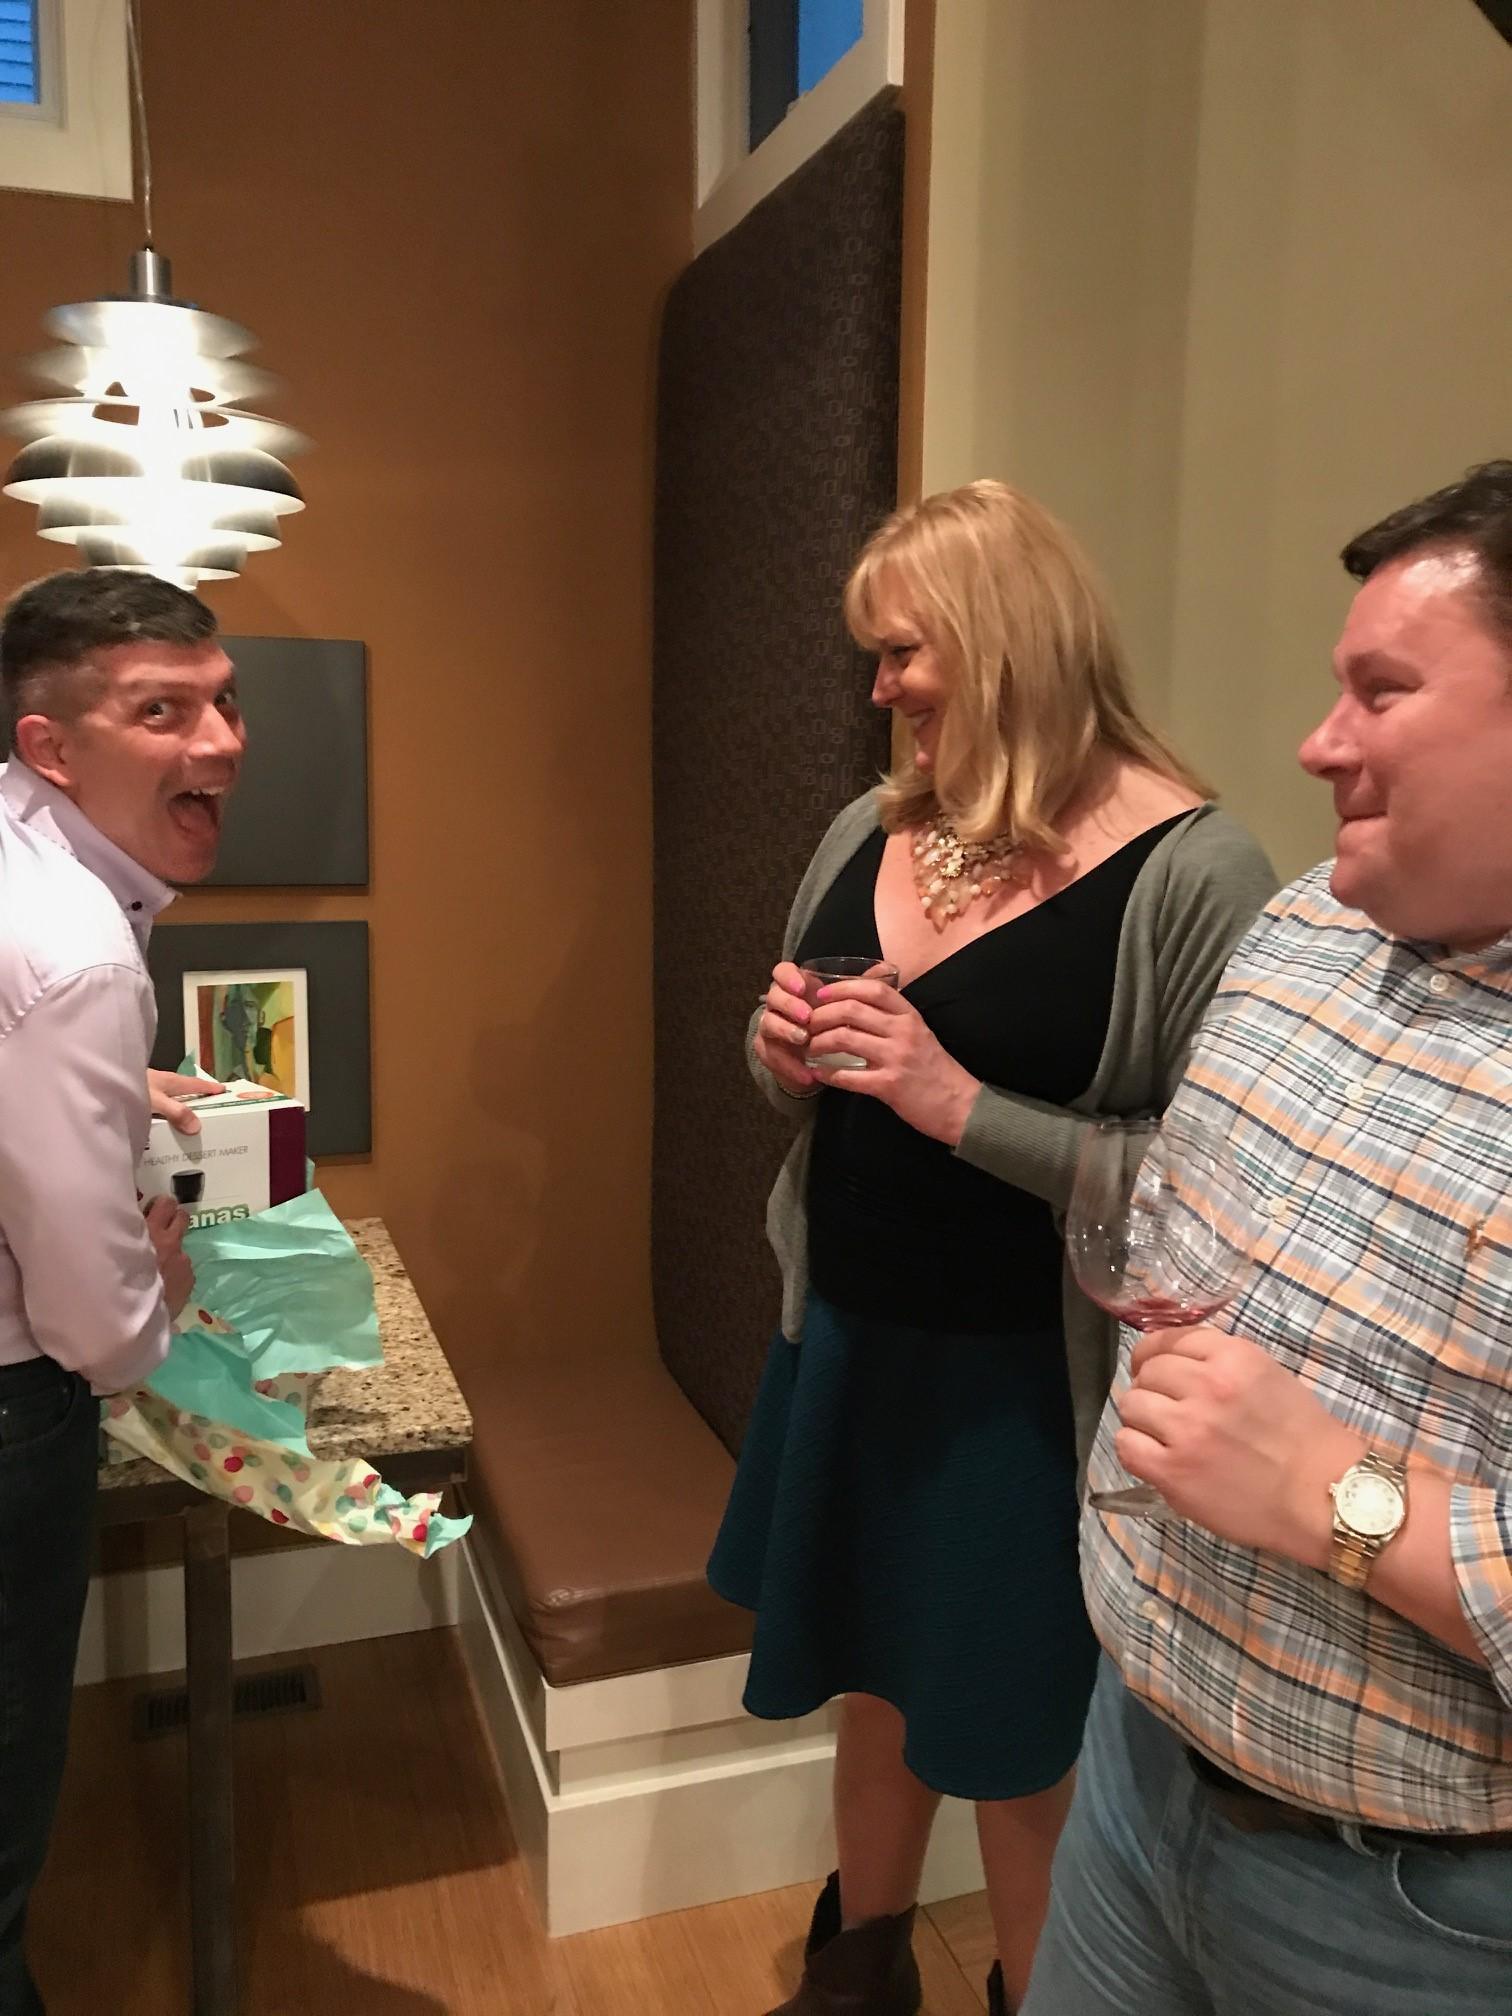 Brooke and Chad gave John a Yonana Machine- Yes, he was very excited...